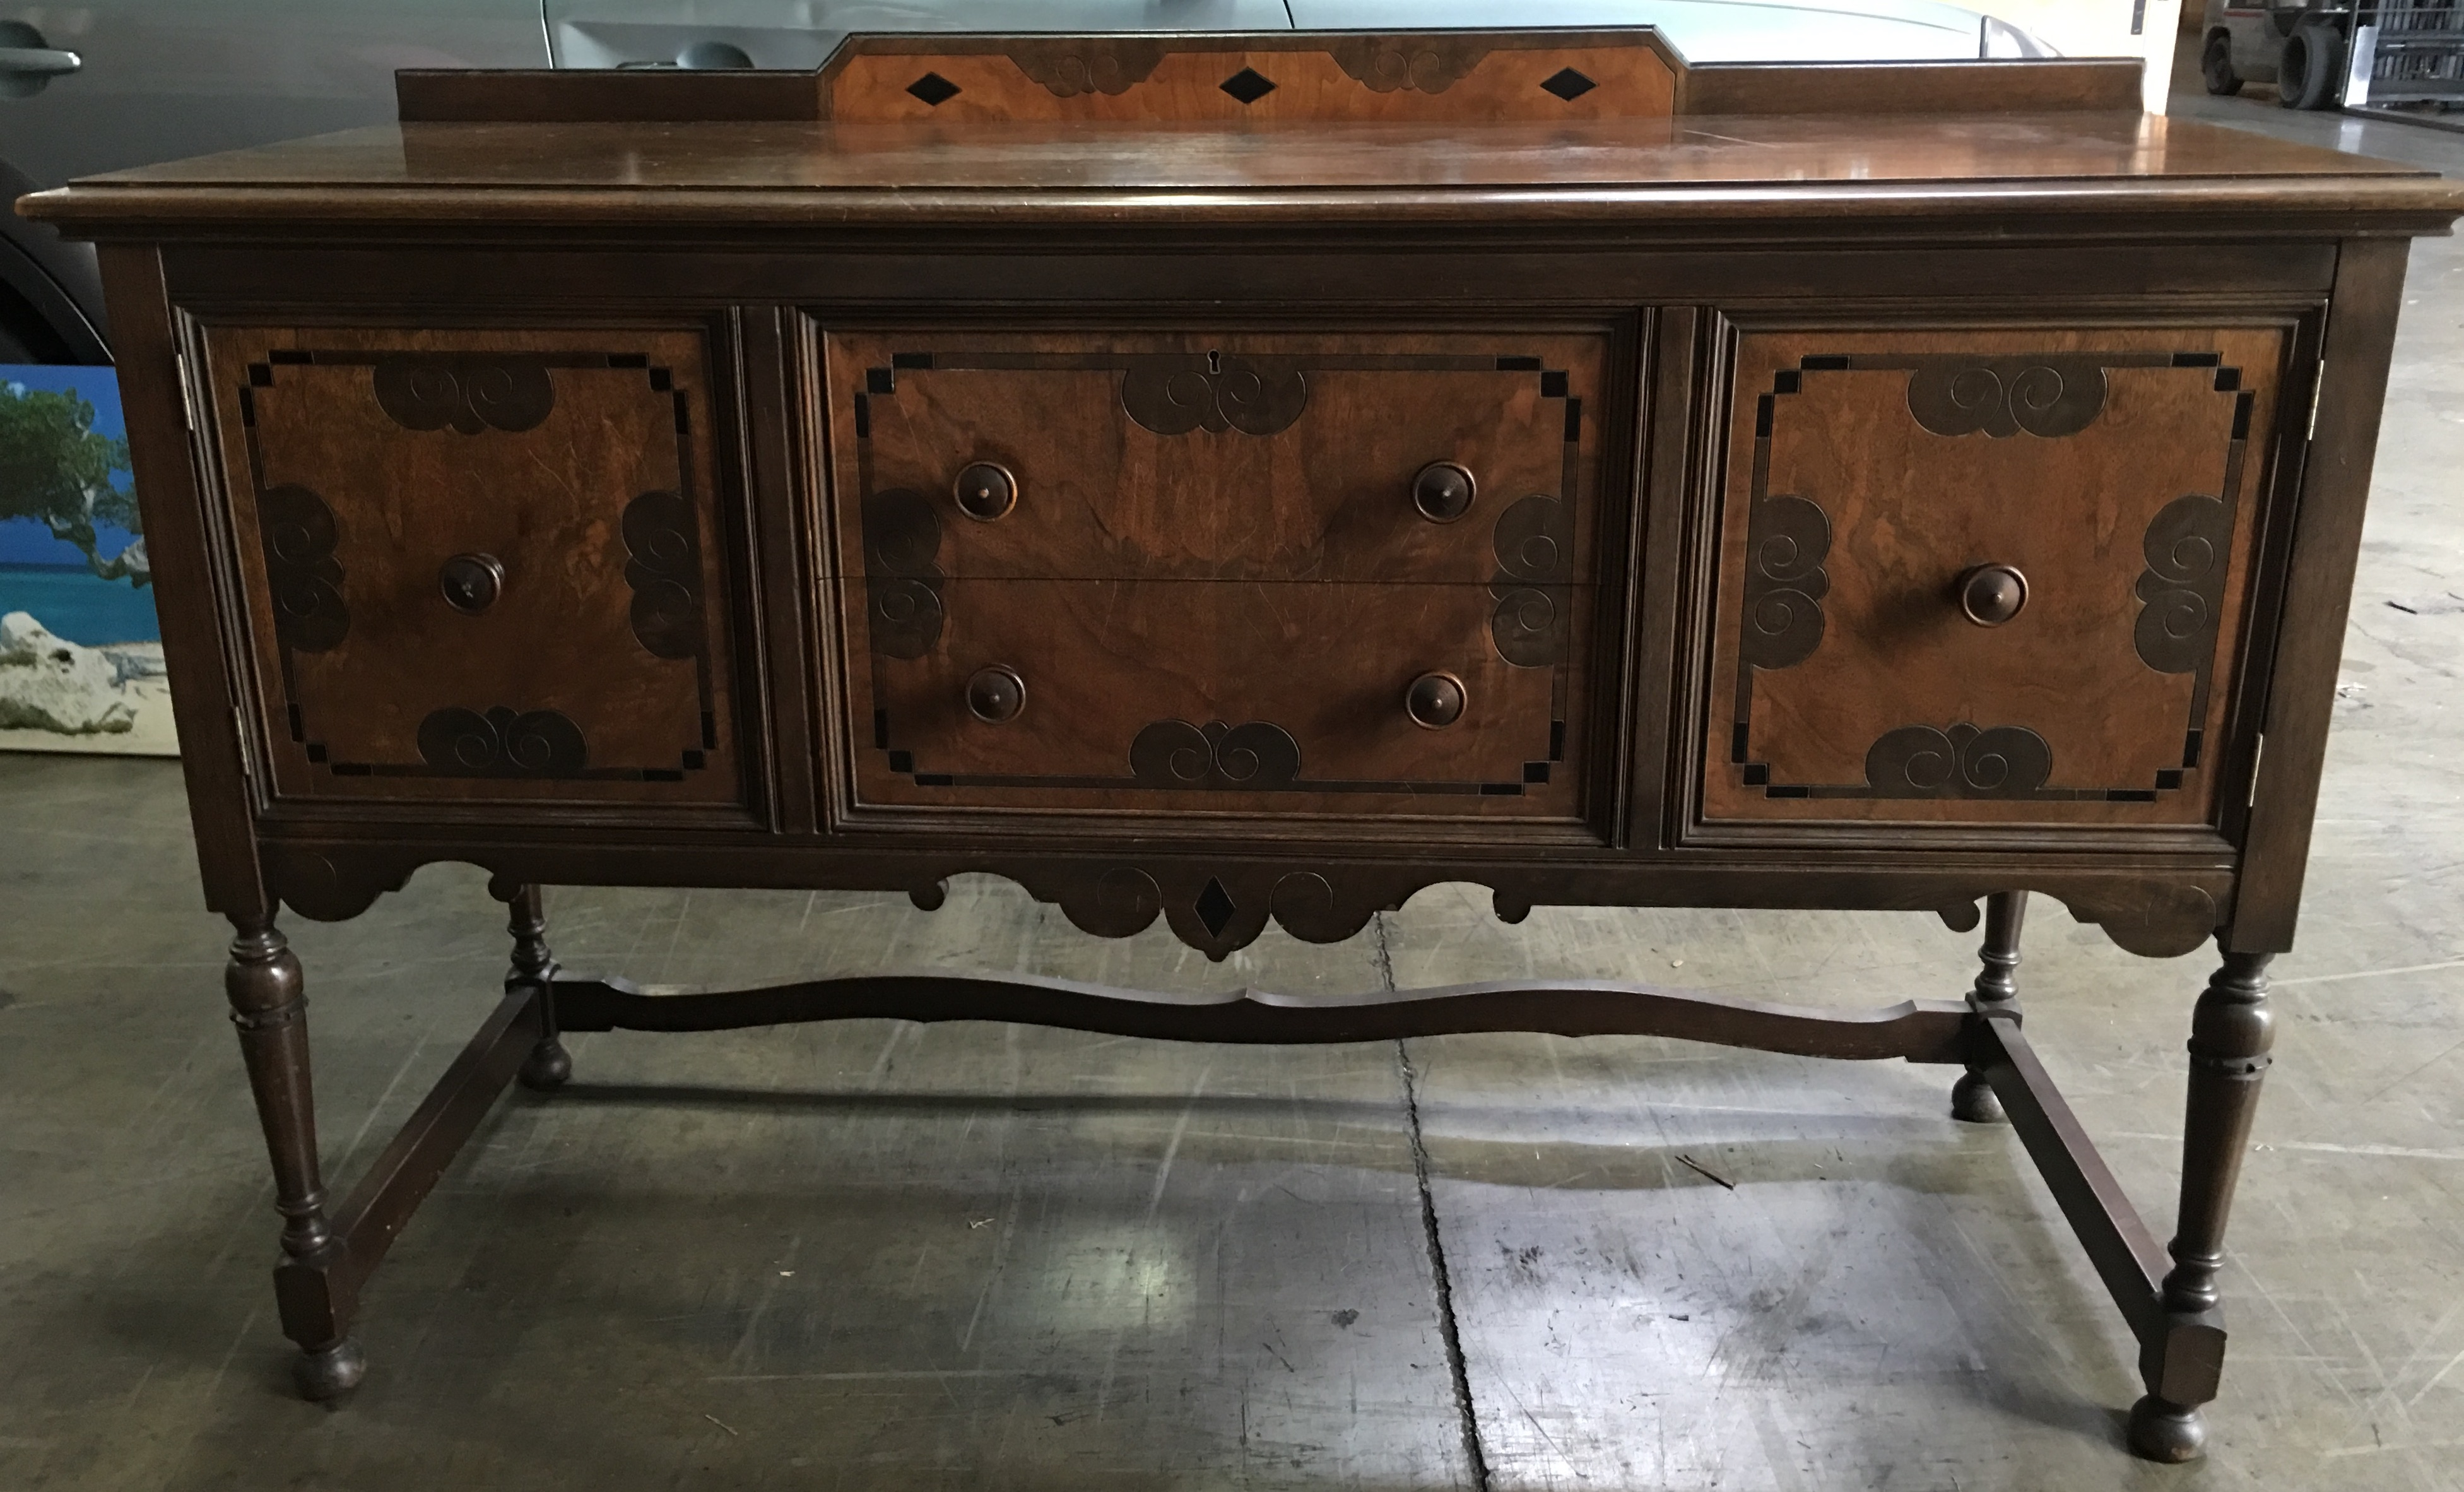 Attrayant My Great Grandmother Bought This Set In 1915. I Loved It For Years, But.  Early American 1915 Grand Rapids Furniture ...